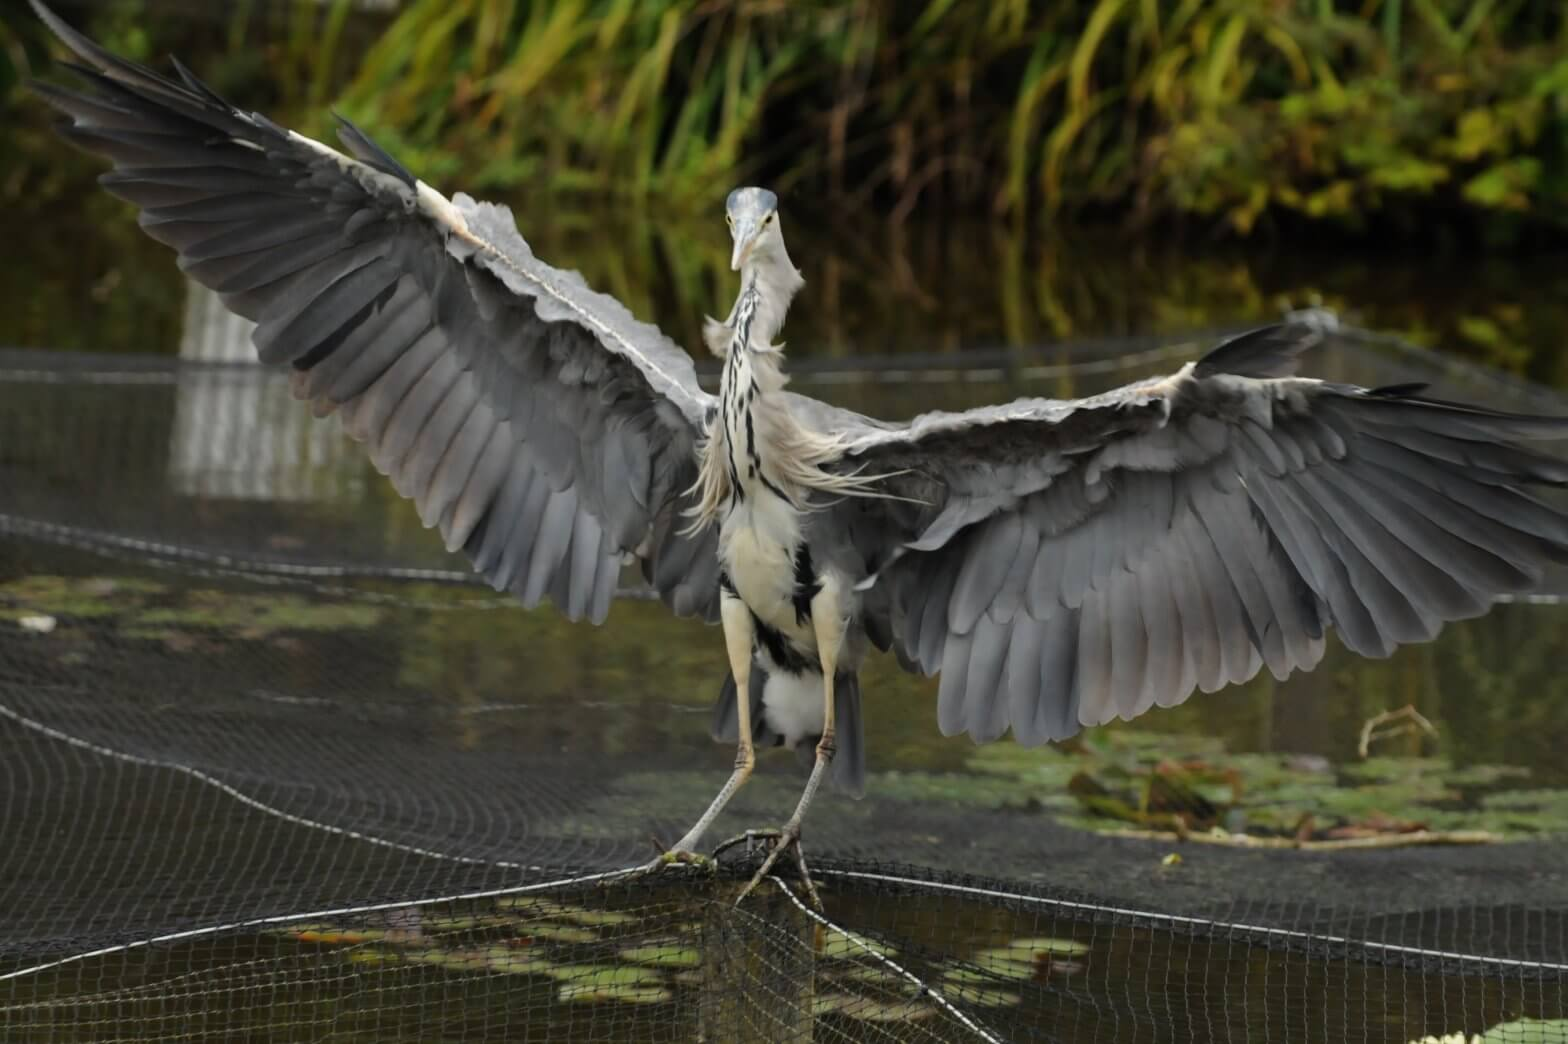 A cheeky heron at Walton Hall and Gardens. Please take the Walton Hall and Gardens survey